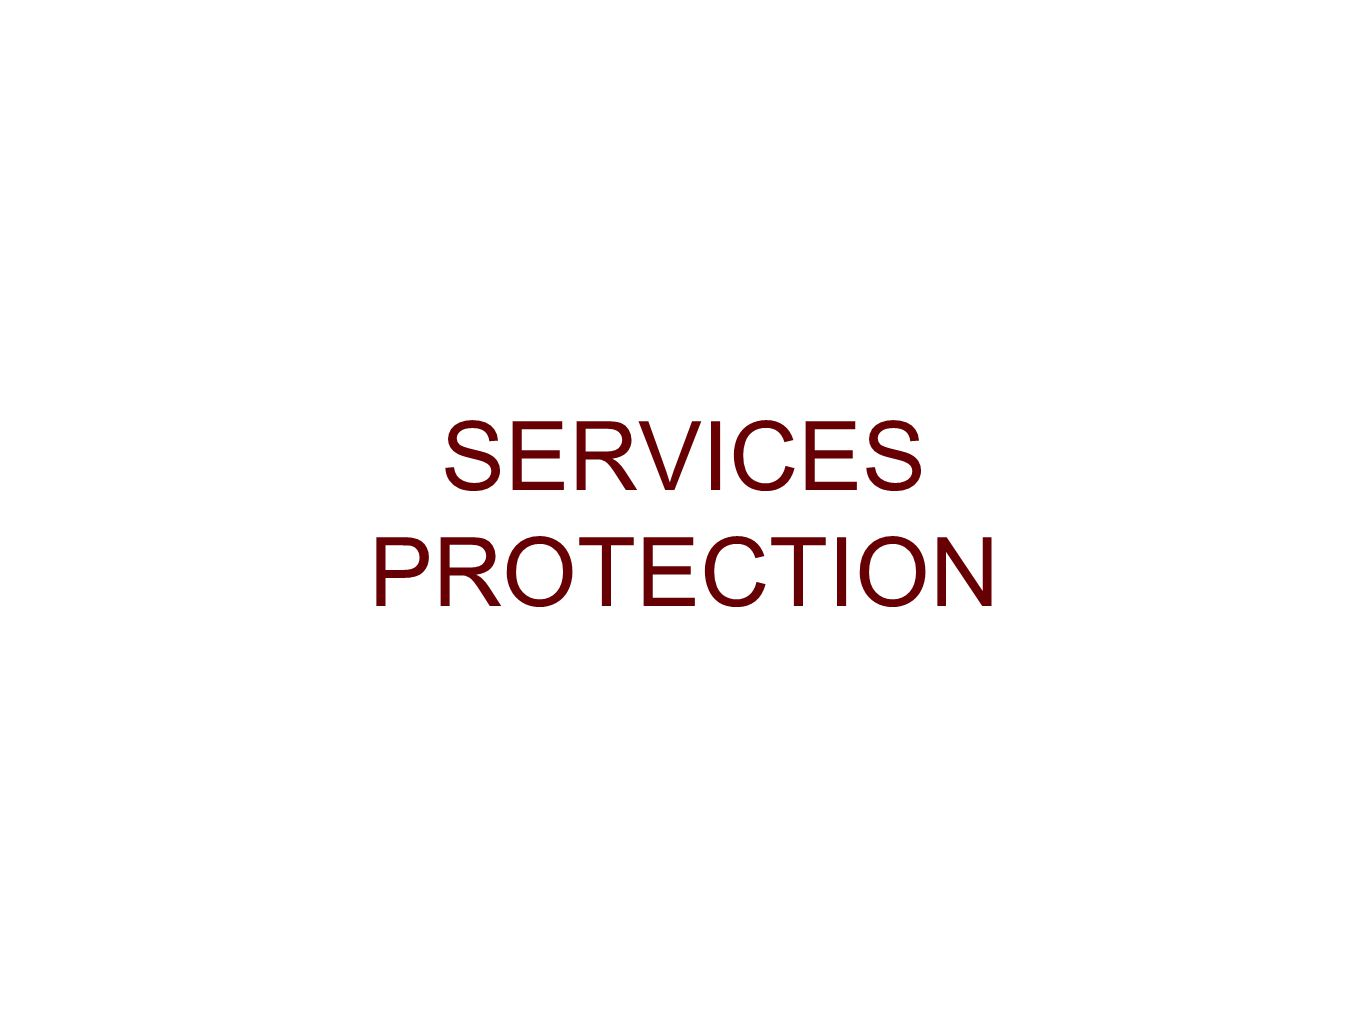 SERVICES PROTECTION